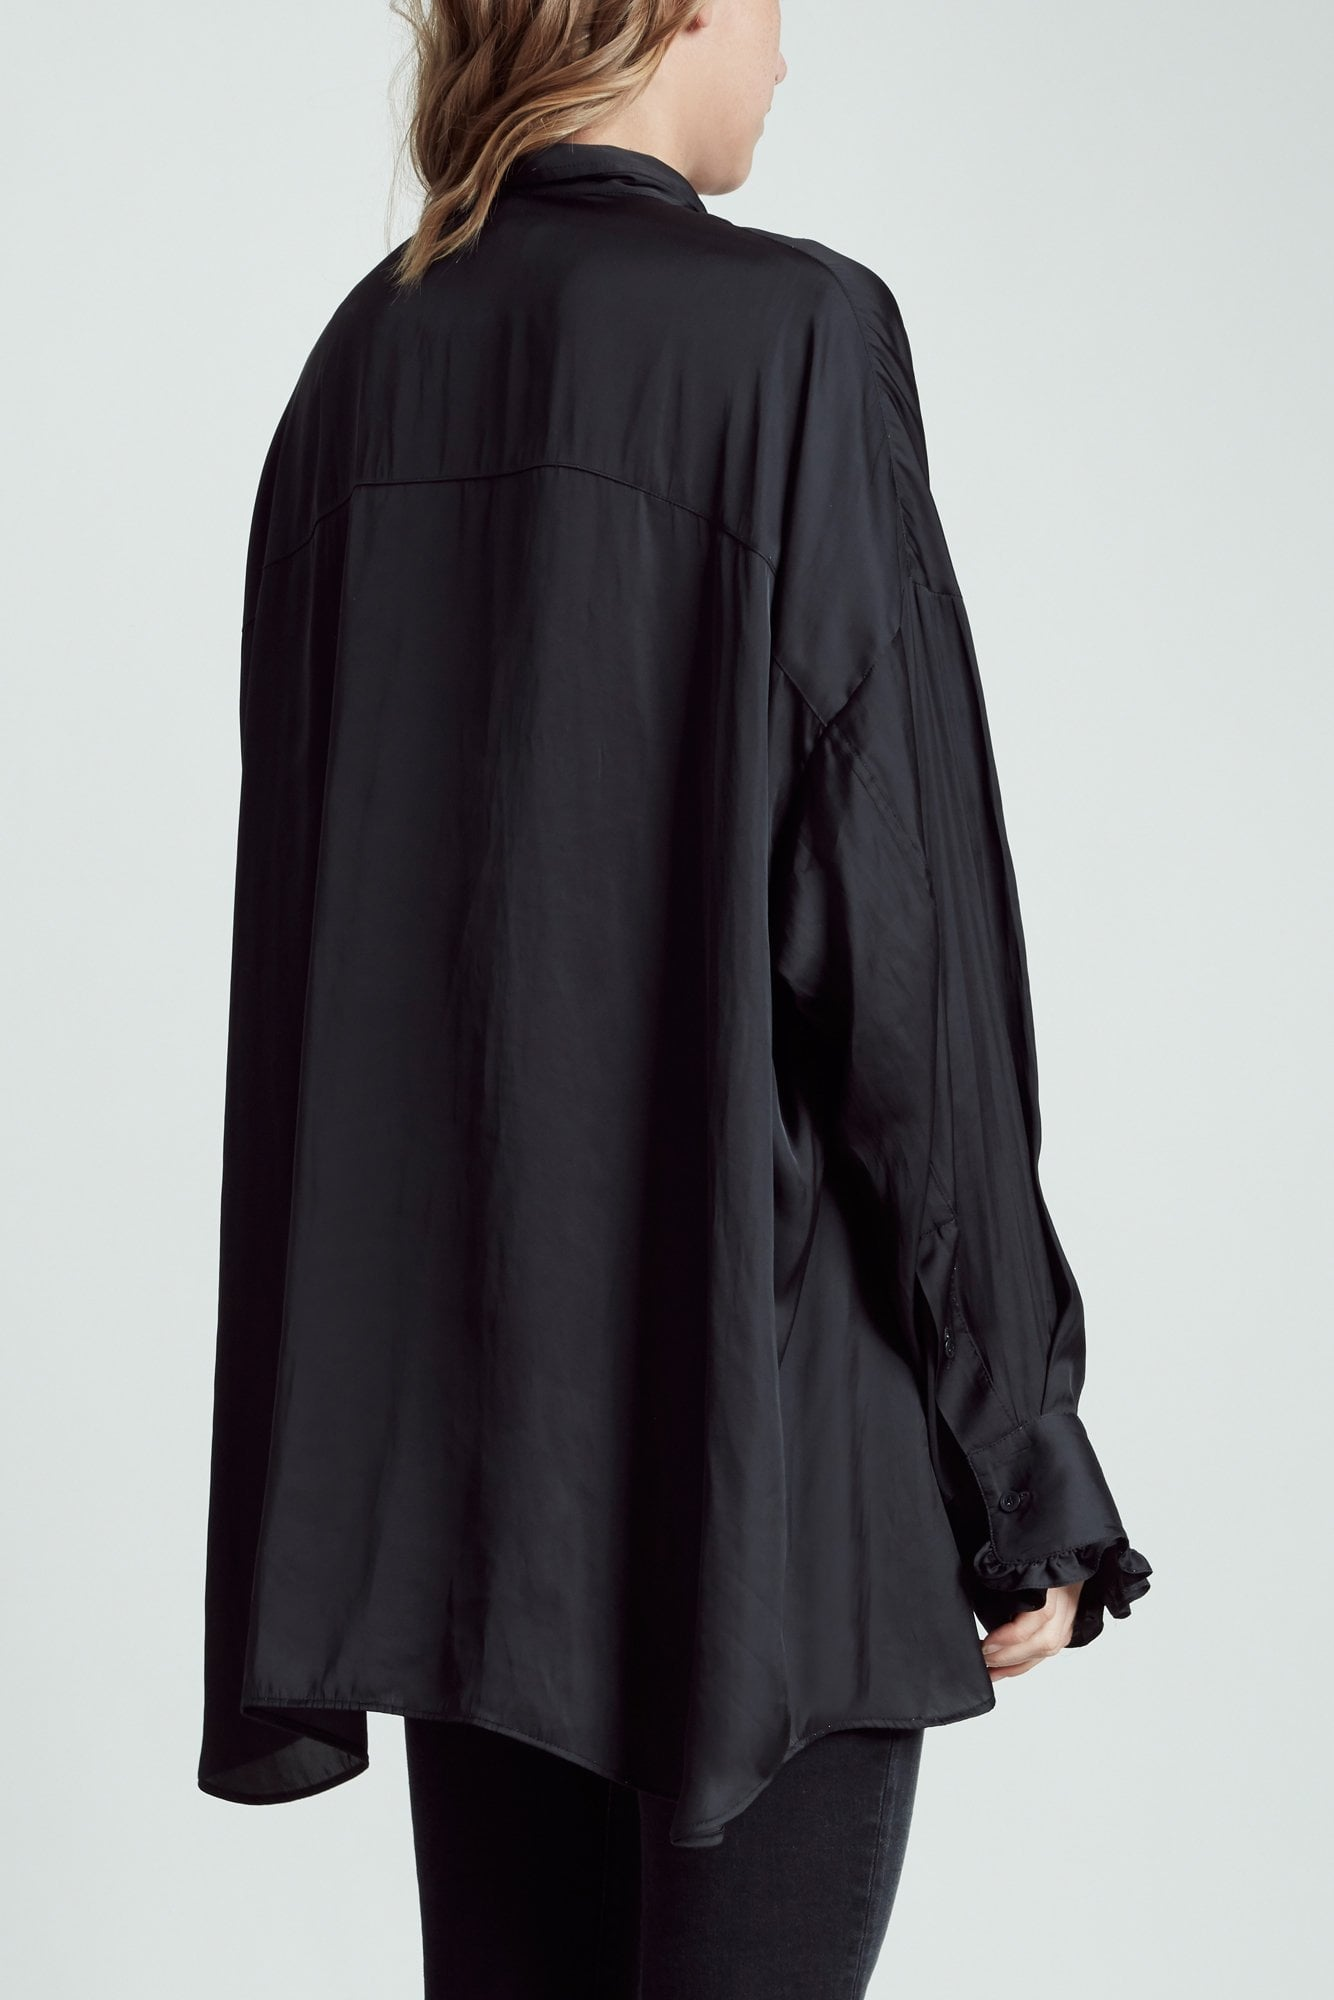 Drop Neck Tuxedo Shirt- Black